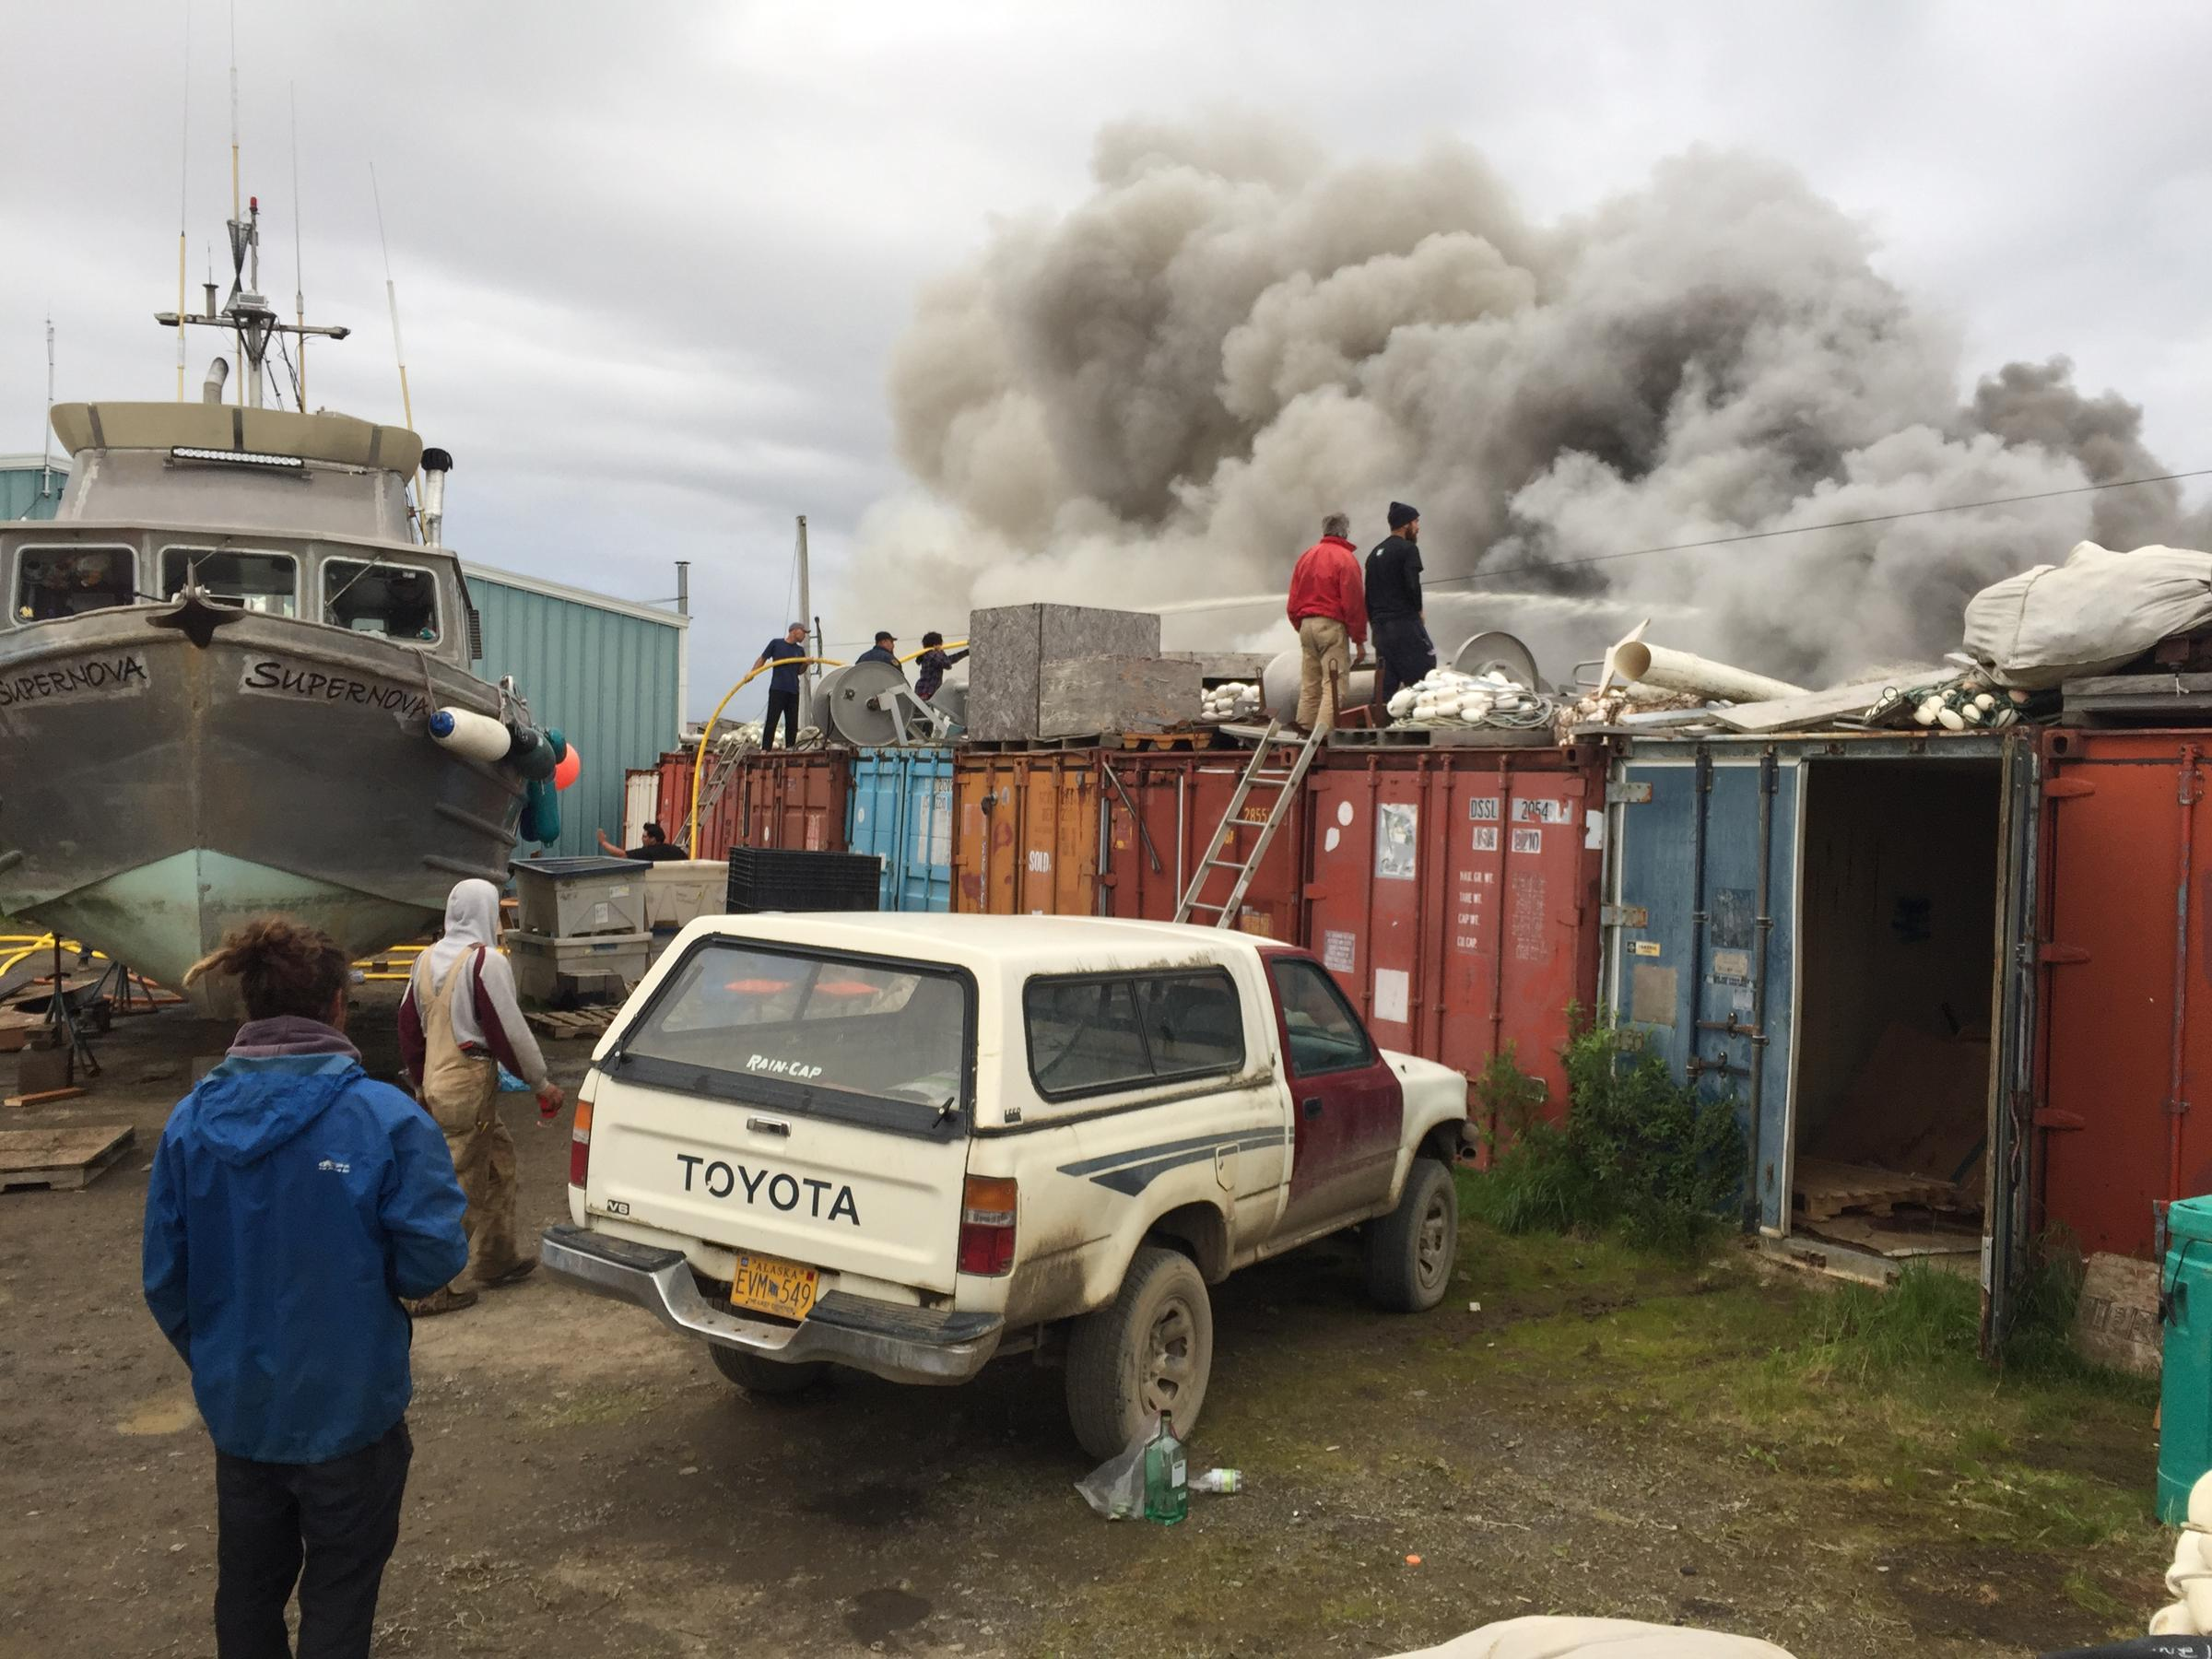 Exceptionnel Onlookers Gather To Watch A Fire Near The Dillingham Harbor On Friday, July  27, 2018. (Photo By Austin Fast / KDLG)